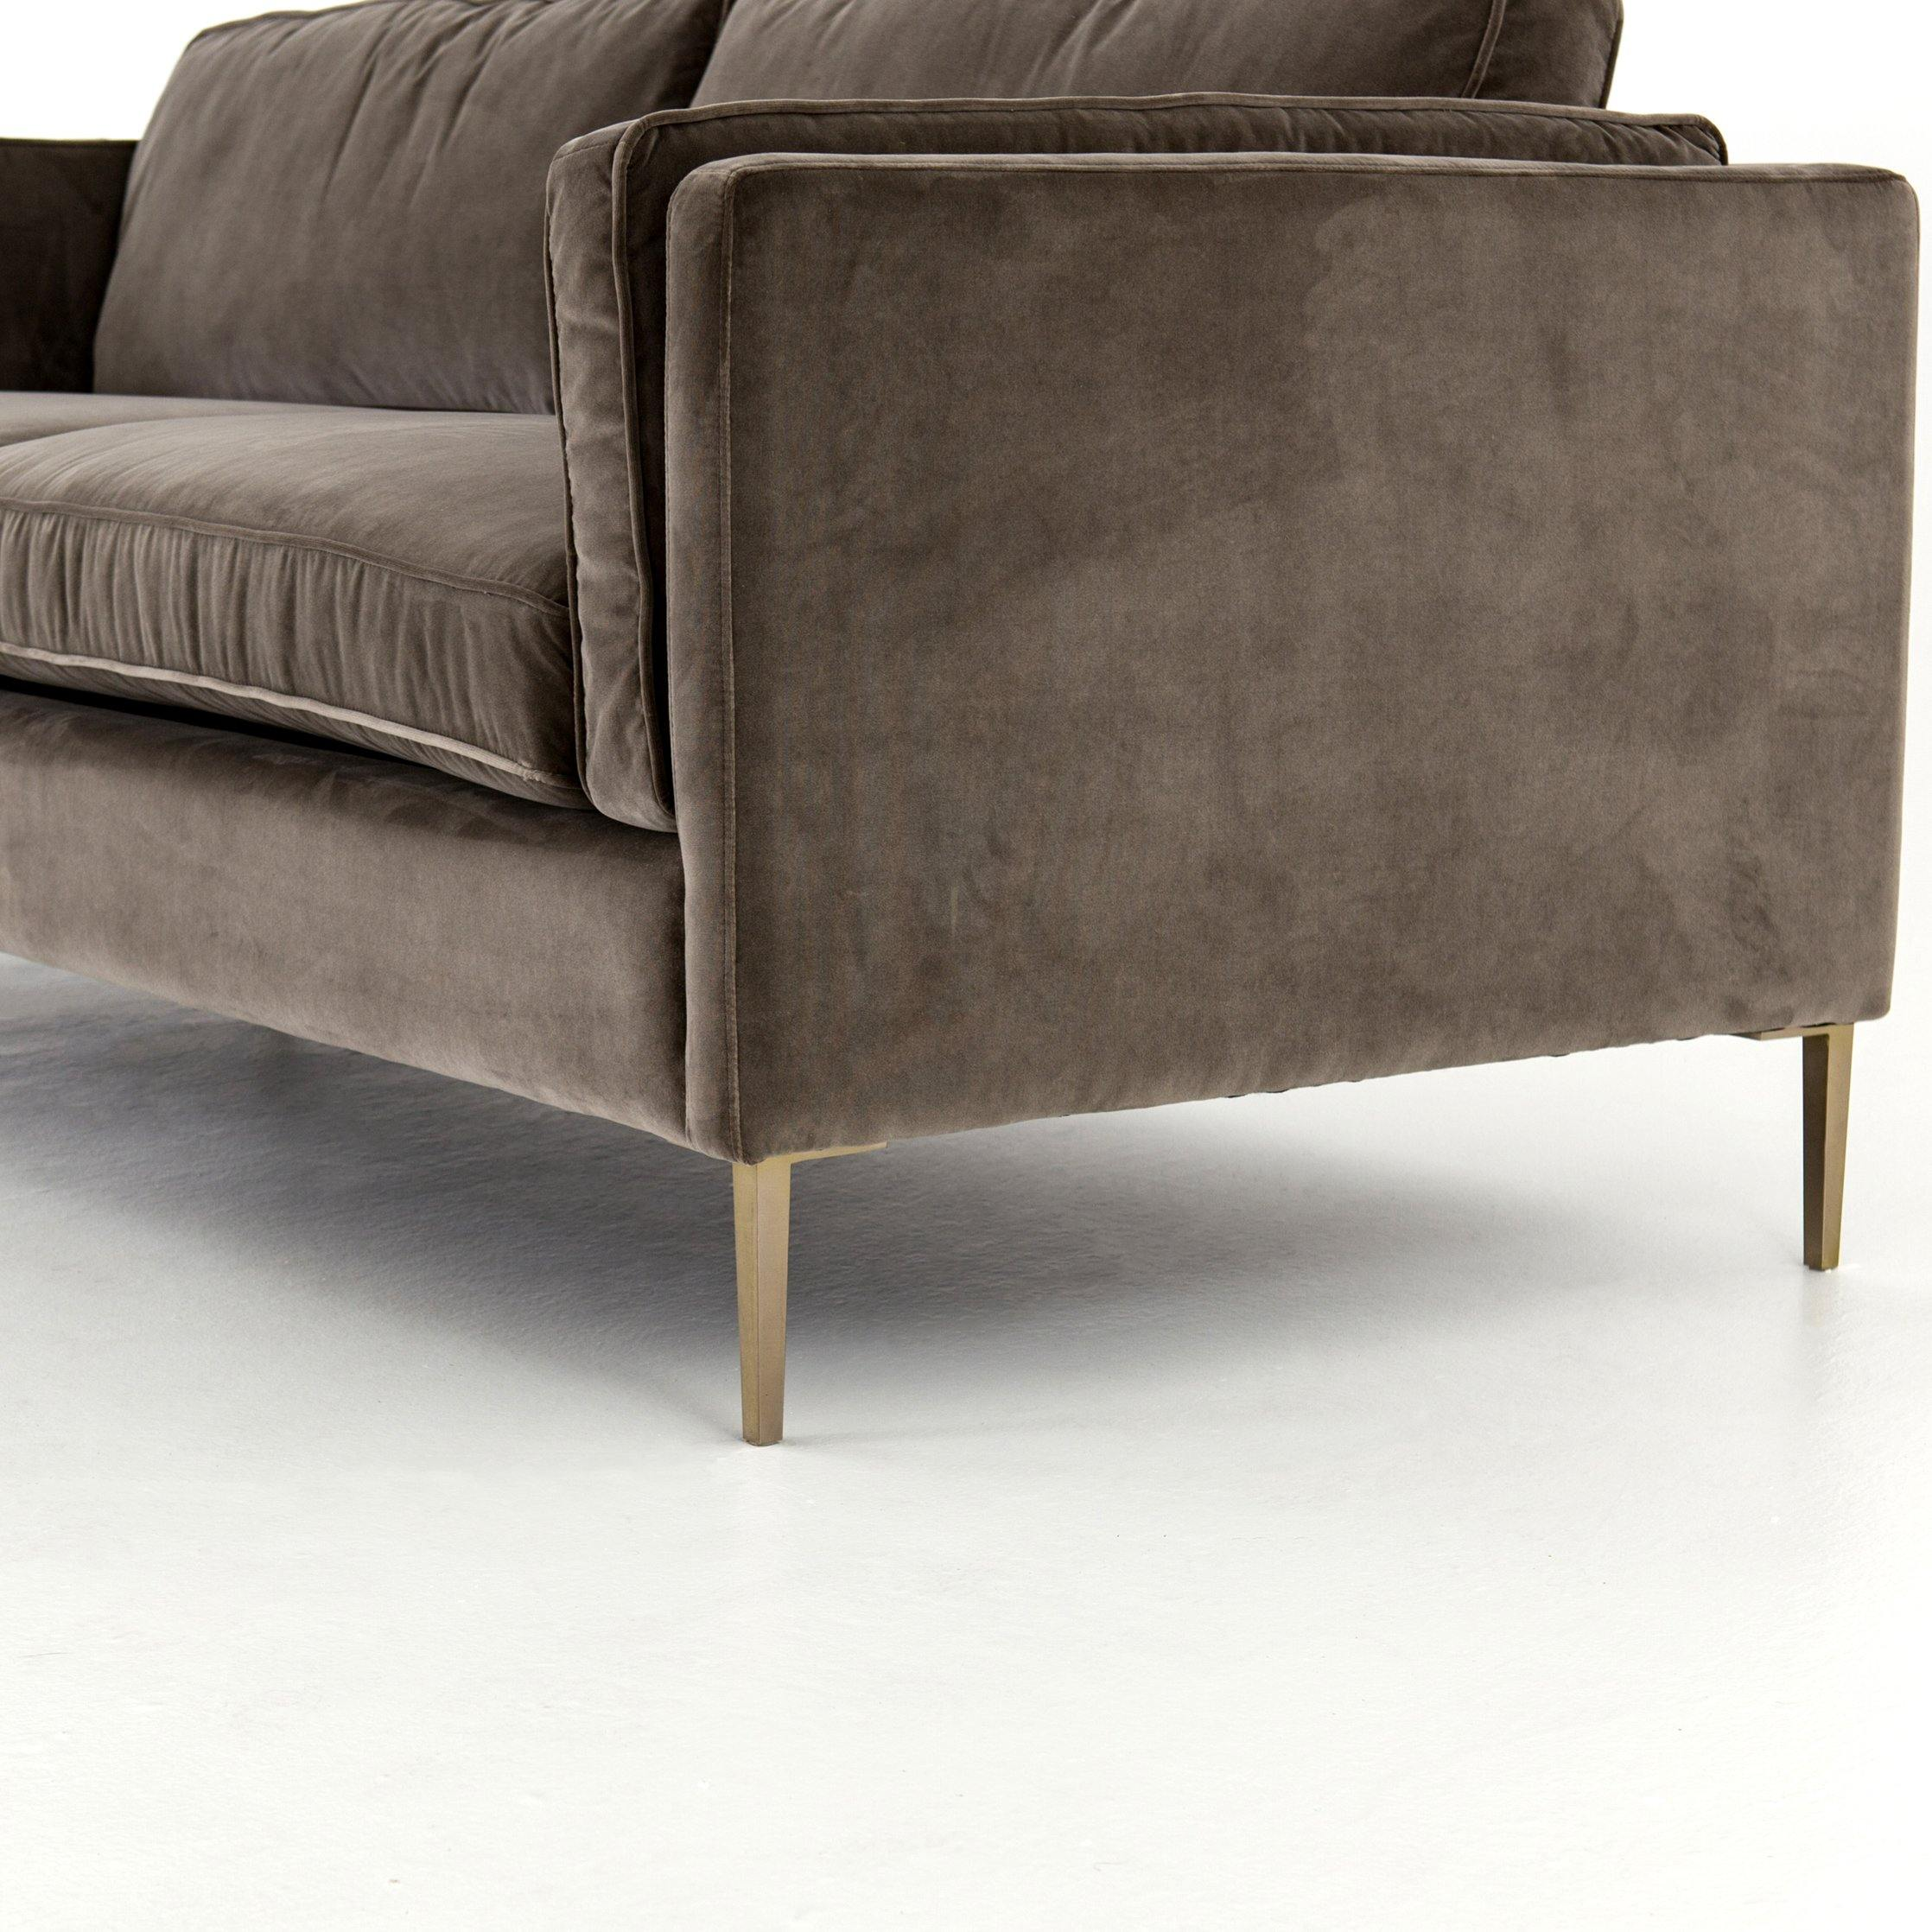 Emery Sofa- Birch - Reimagine Designs